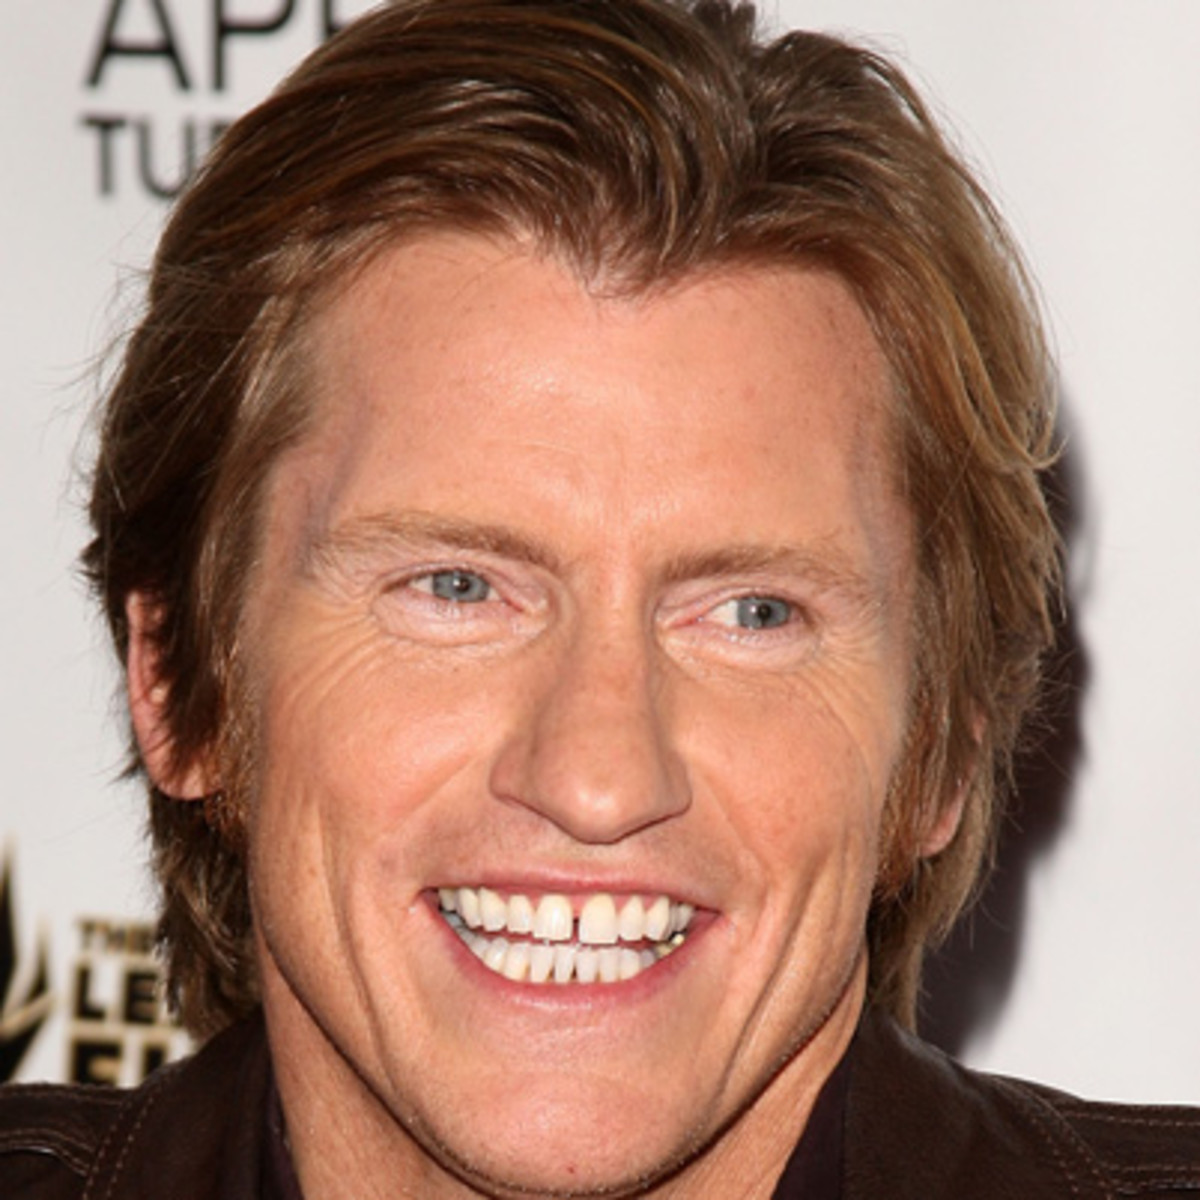 denis leary trumpdenis leary spiderman, denis leary young, denis leary songs, denis leary stand up, denis leary lock n load, denis leary twitter, denis leary on coffee, denis leary judgement night, denis leary kevin spacey, denis leary drugs, denis leary irish, denis leary net worth, denis leary trump, denis leary animals